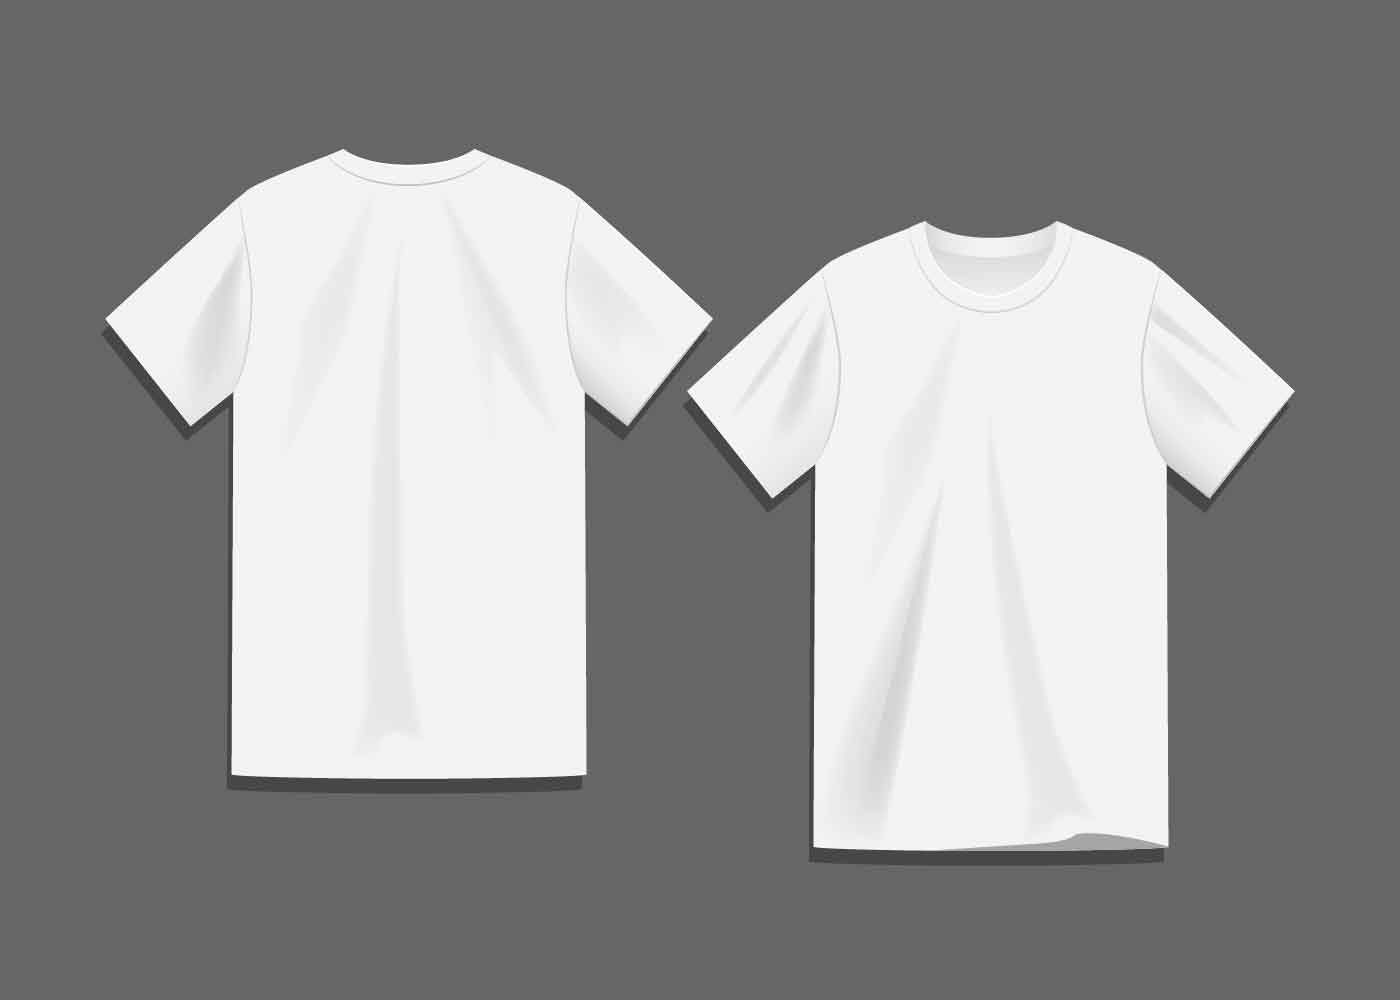 009 Beautiful Blank Tee Shirt Template High Resolution  T Design Pdf Free T-shirt Front And Back DownloadFull